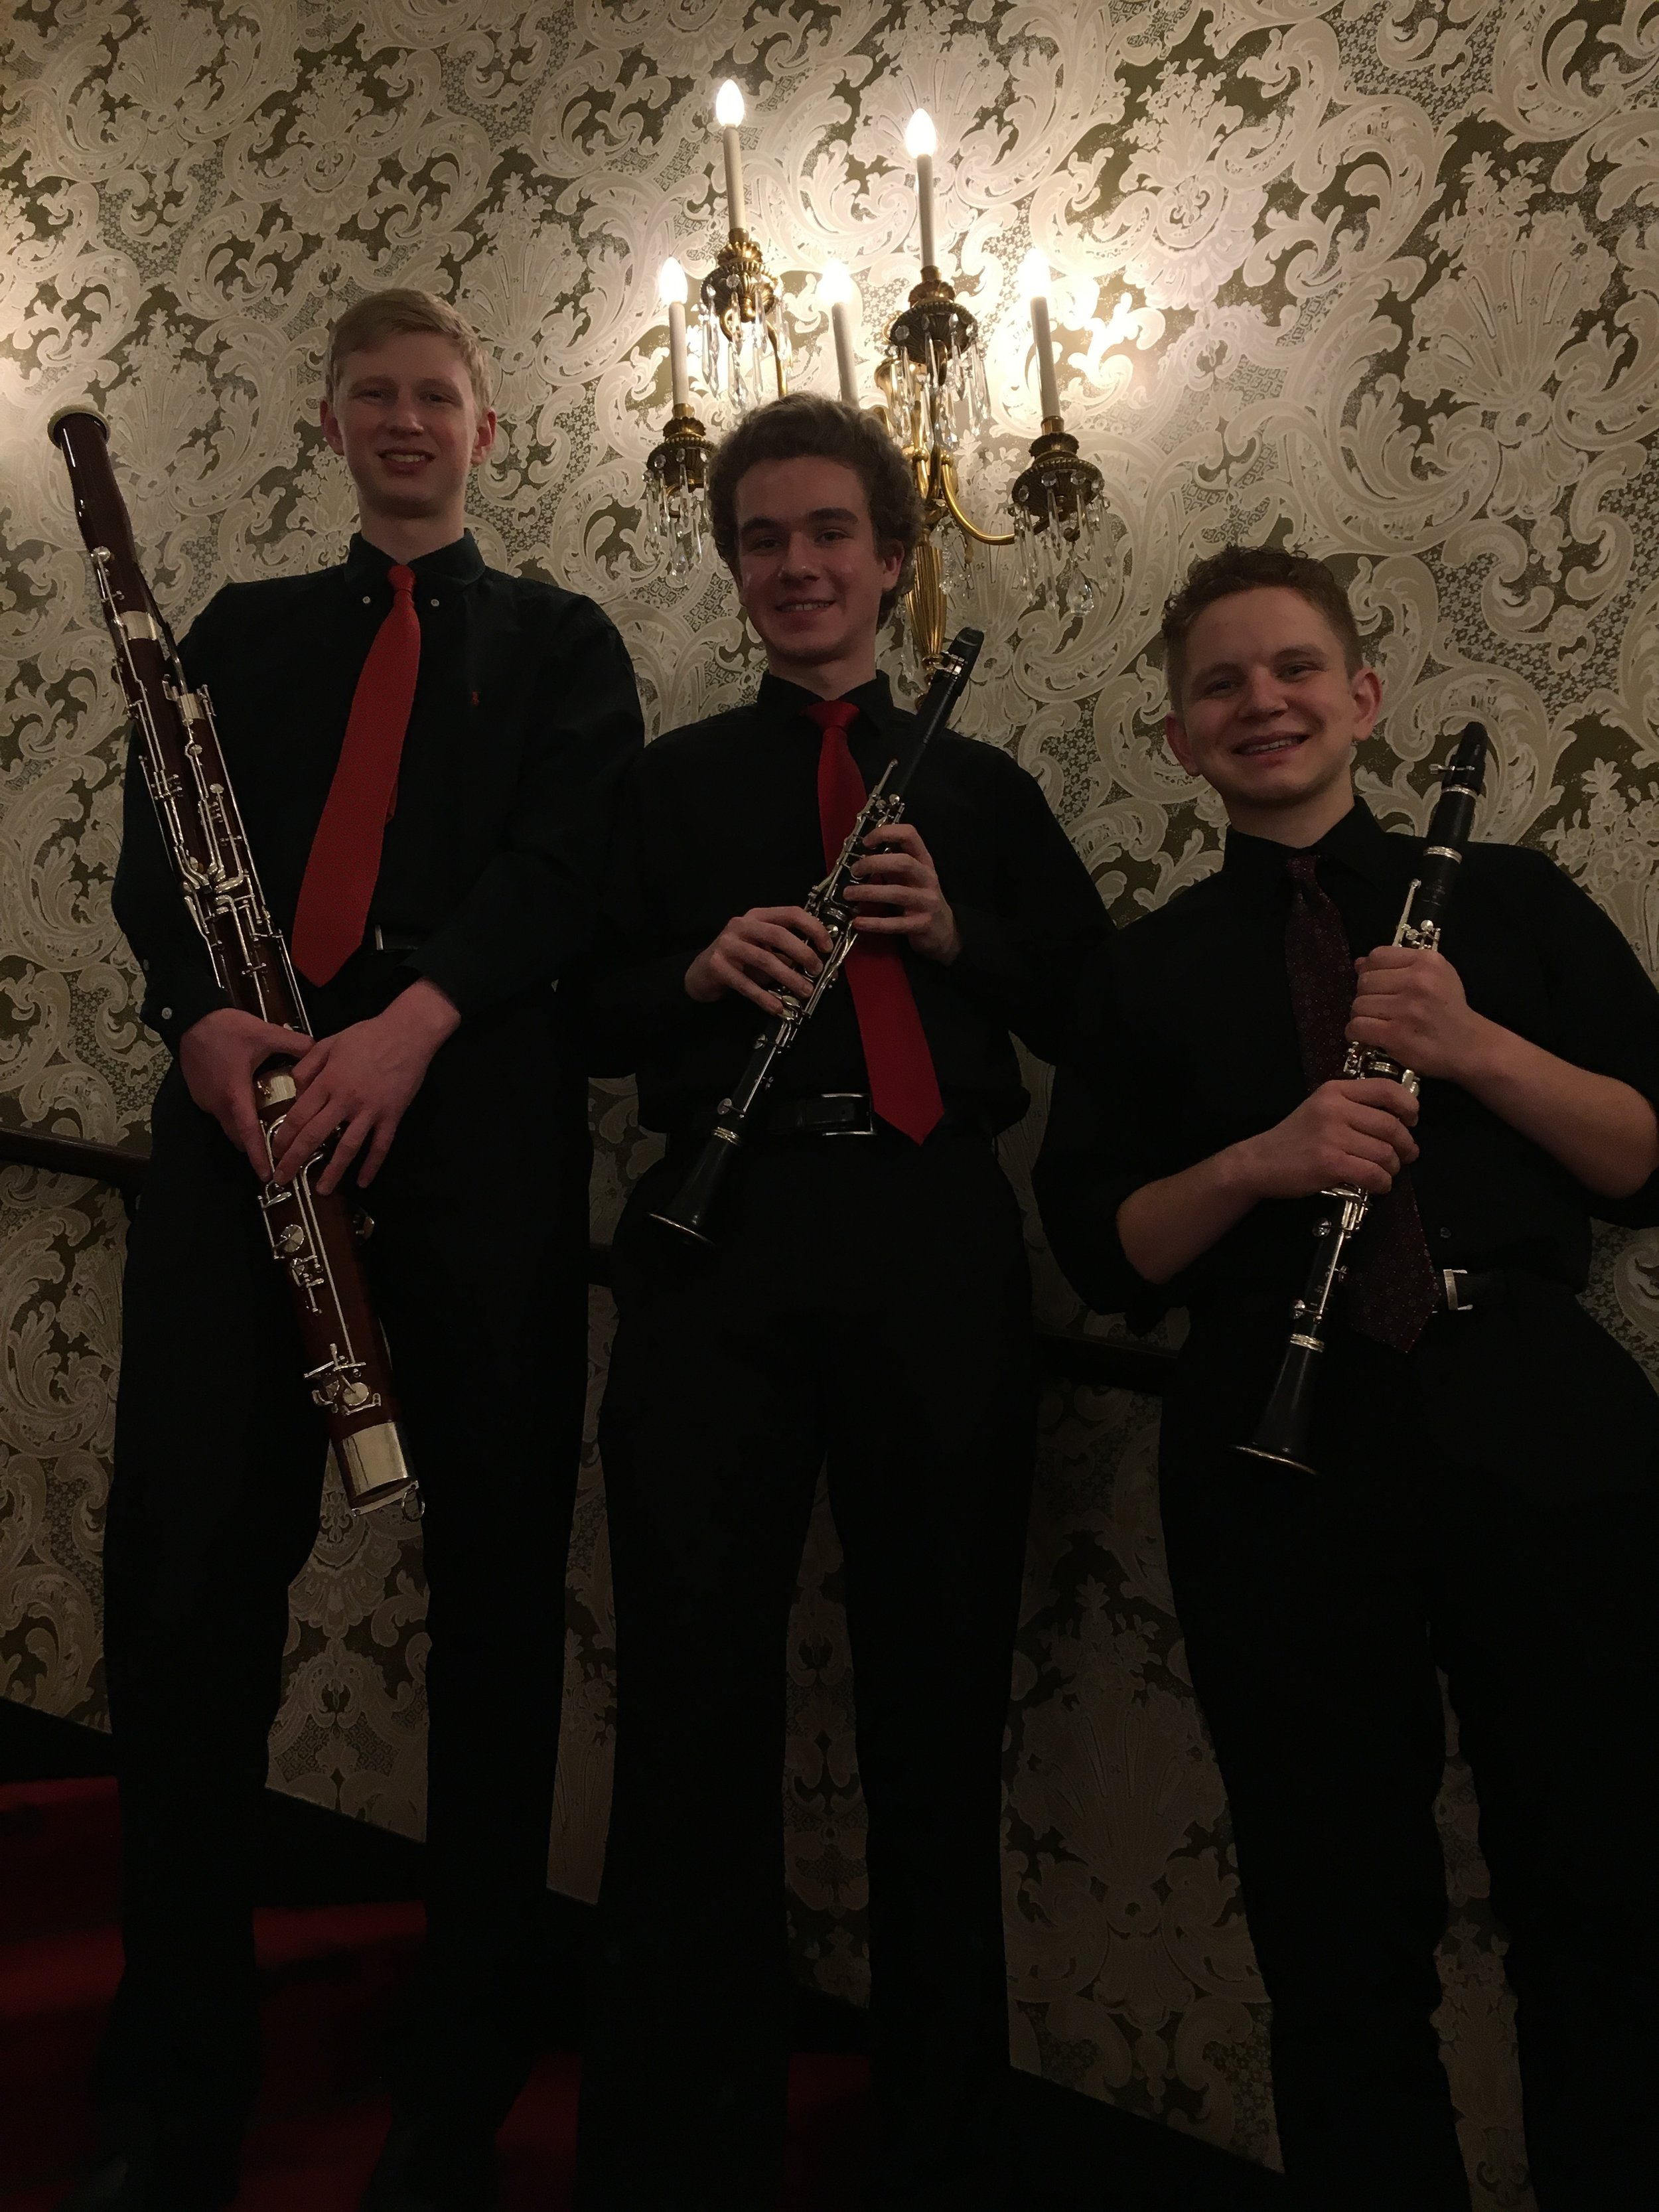 Heinz Hall Lobby Performance - March 22, 2019The Point Trio - Dennis, Matt, and Trey - performed in the stunning foyer of Heinz Hall for the Performing Arts. This trio studied chamber music this year with PSO Bass Clarinet Jack Howell.